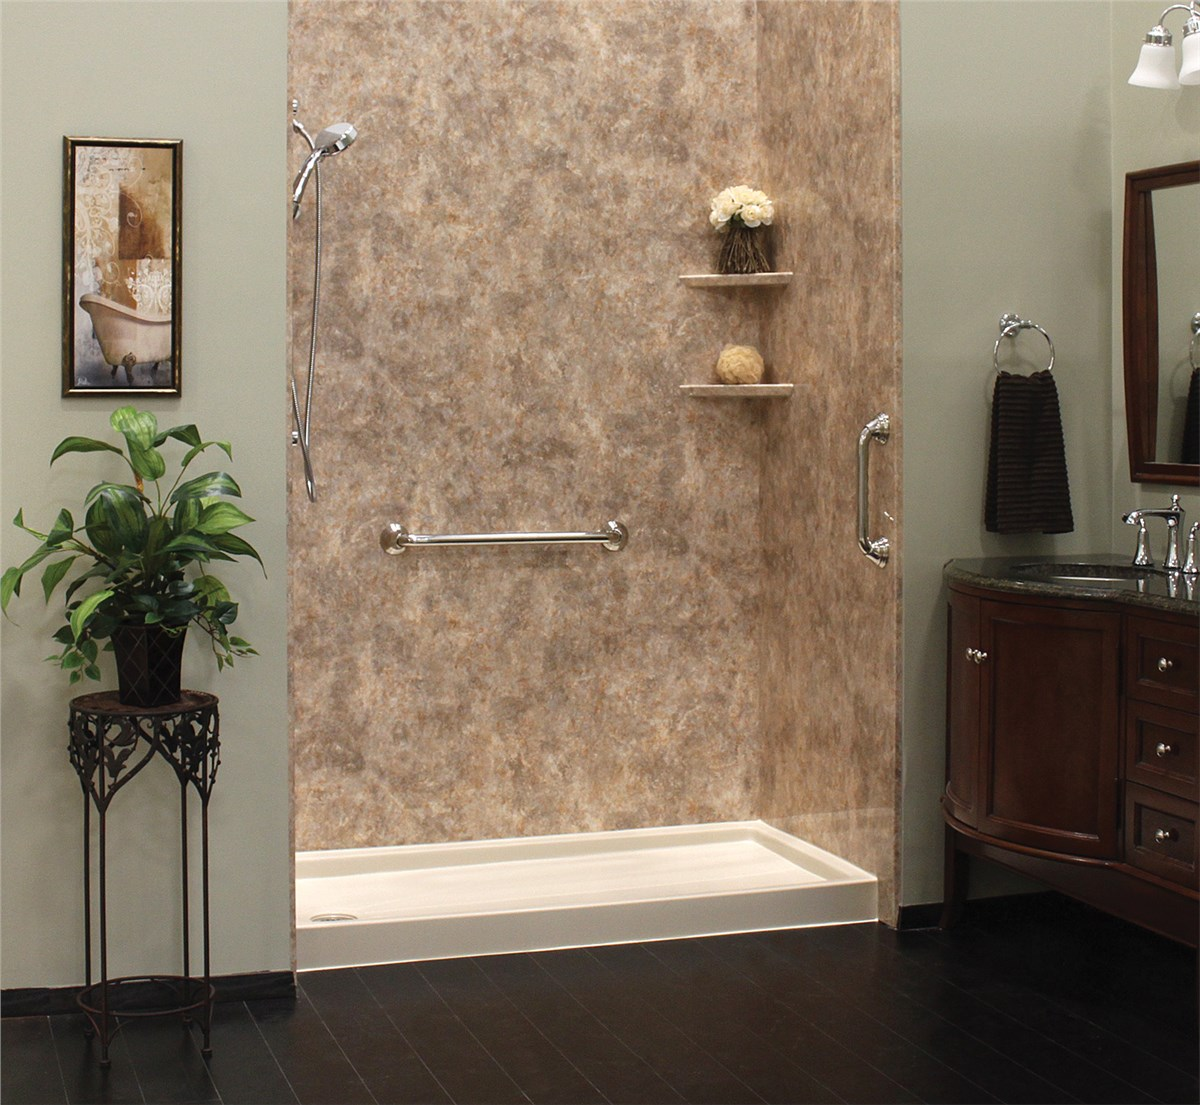 Green Bay Walk-In Showers | Madison Walk-In Showers | Tundraland